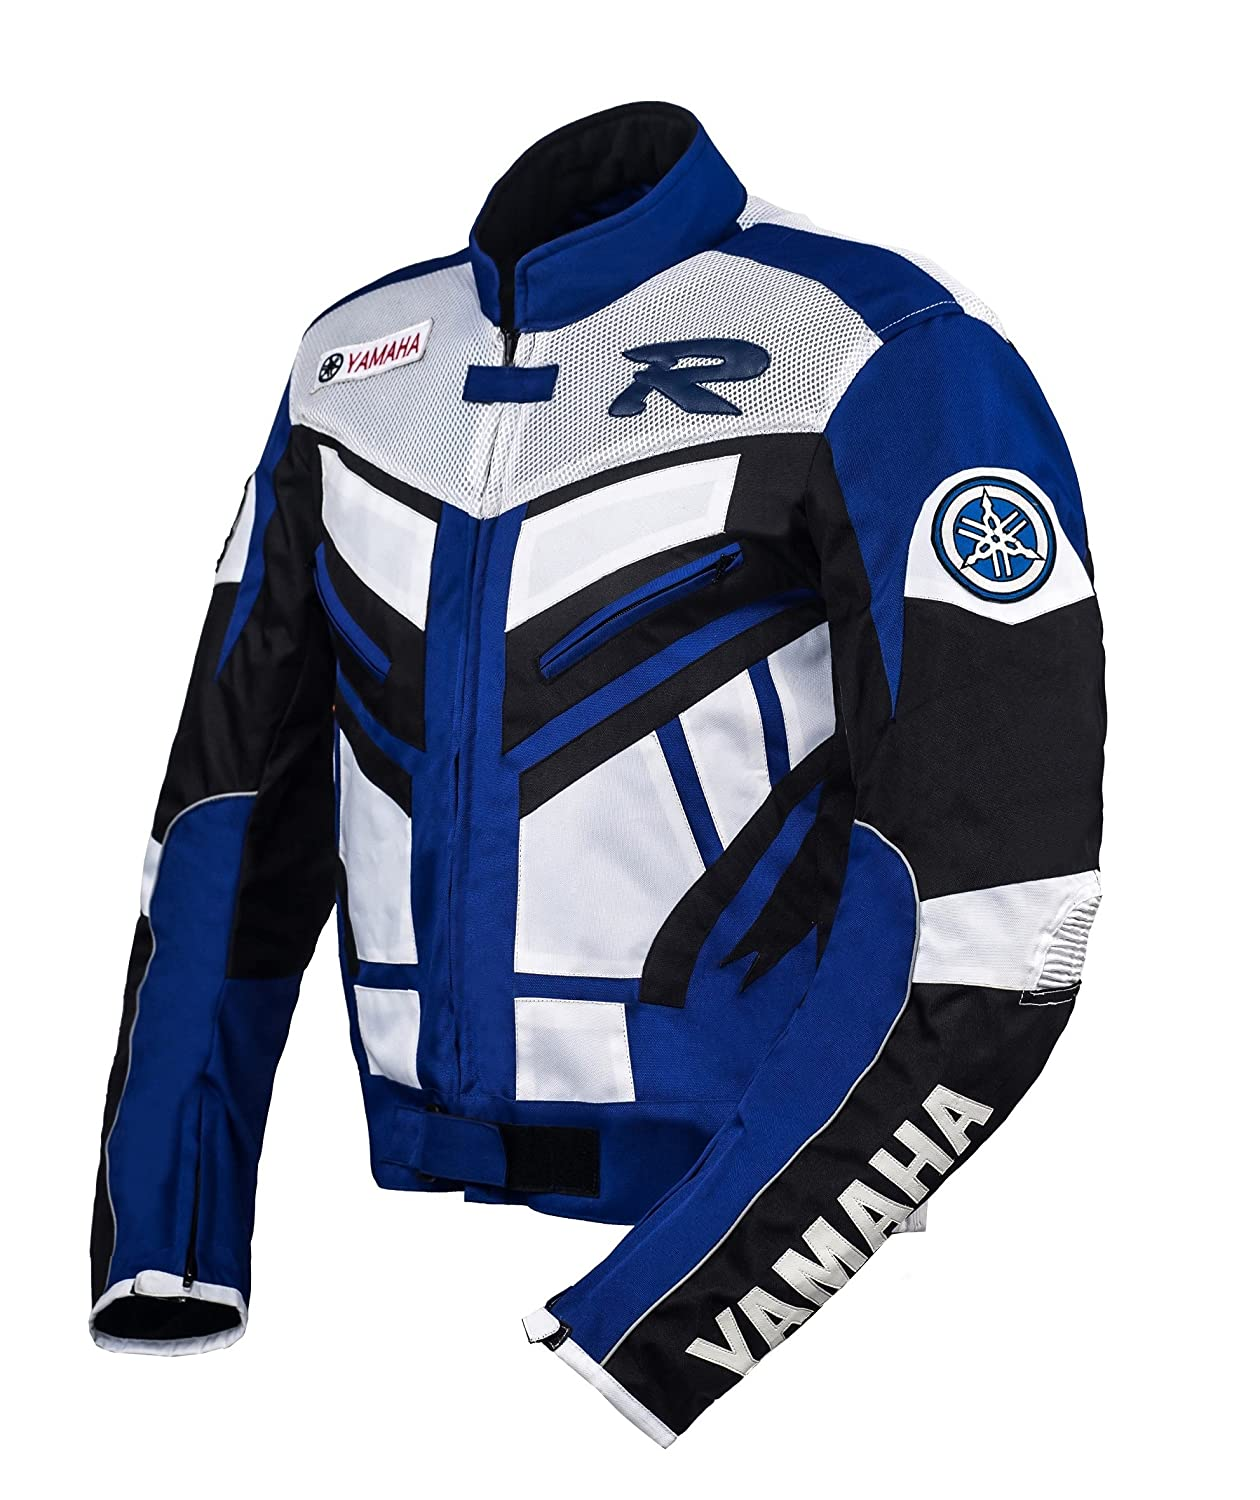 Yamaha Blue Racing Textile Jacket (M (EU50))